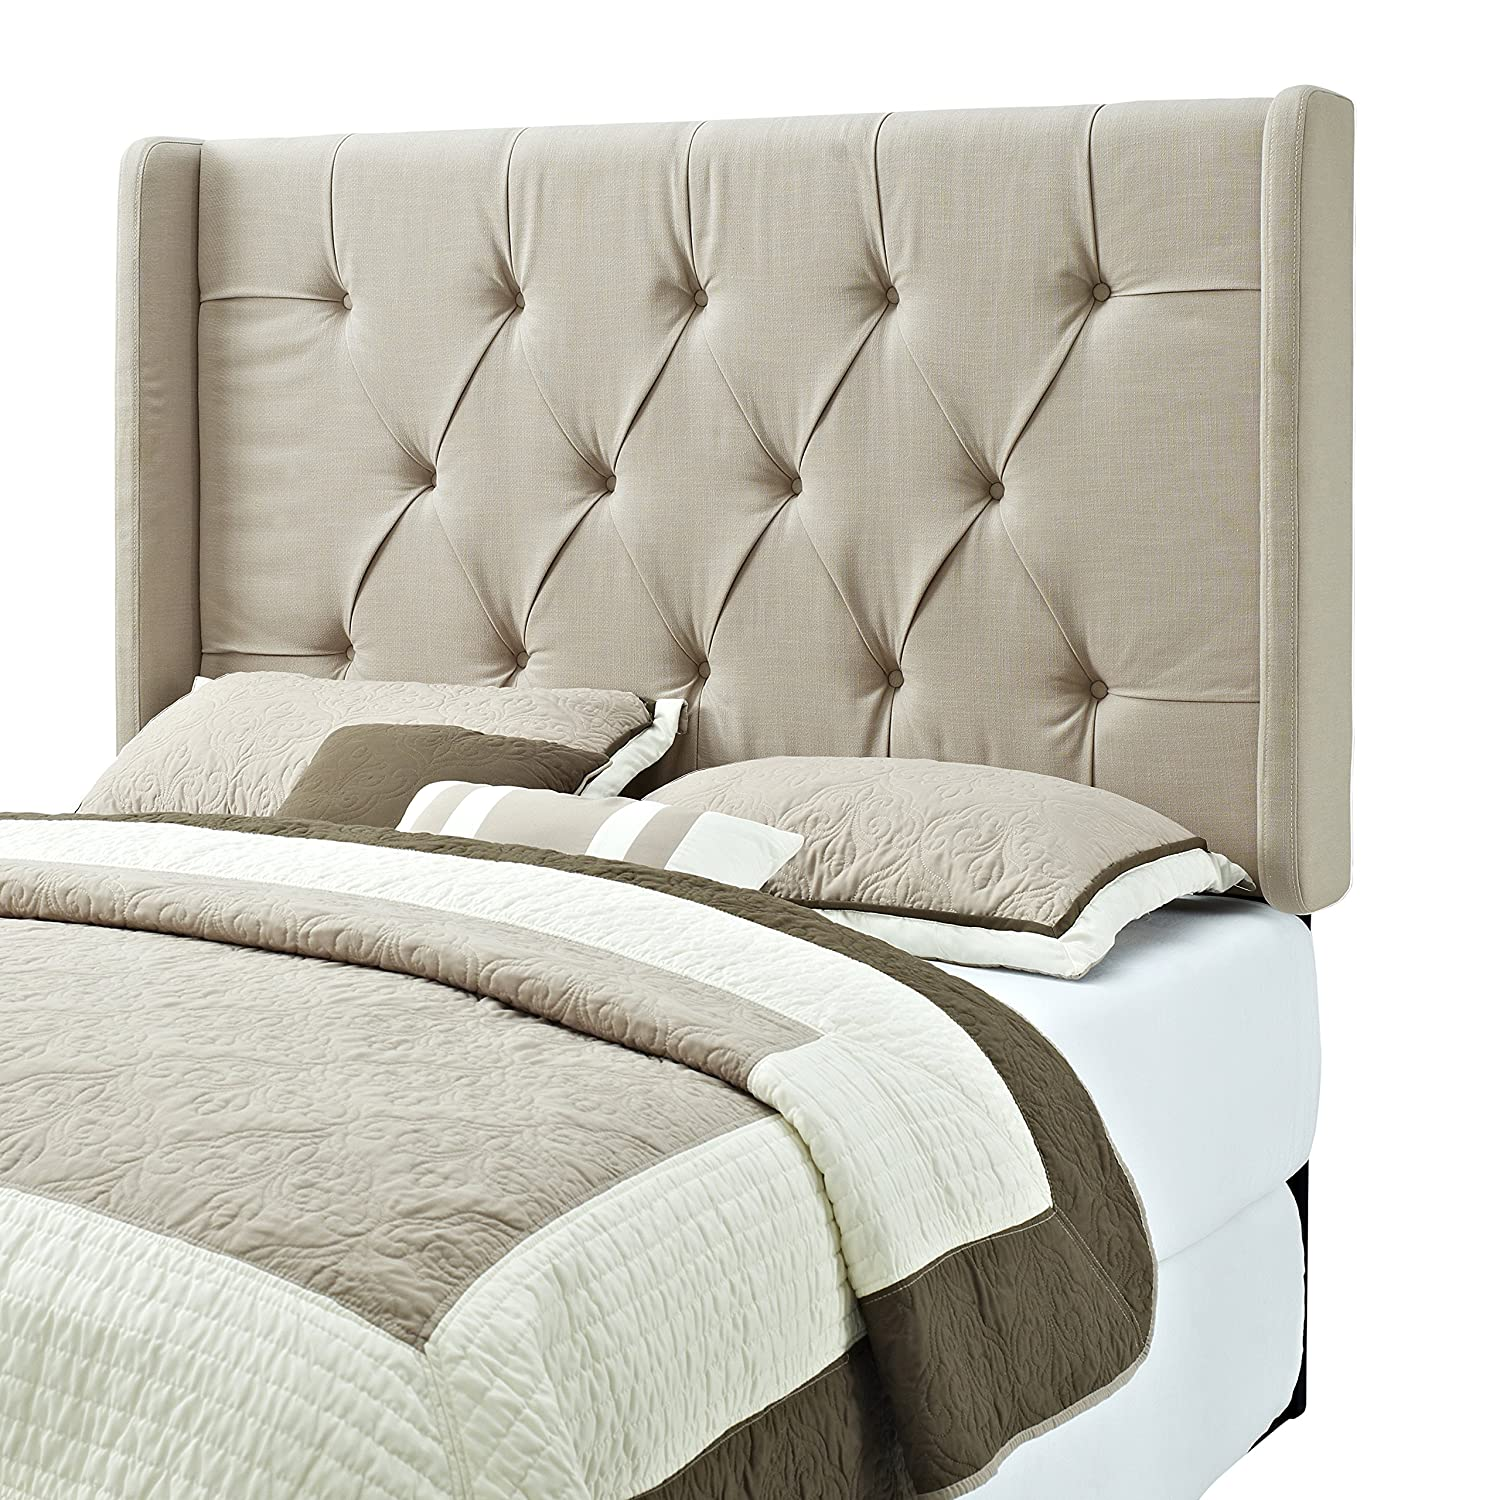 Amazon.com - Pulaski Mirabella Tufted Panel Headboard with Wings, King - - Amazon.com - Pulaski Mirabella Tufted Panel Headboard With Wings